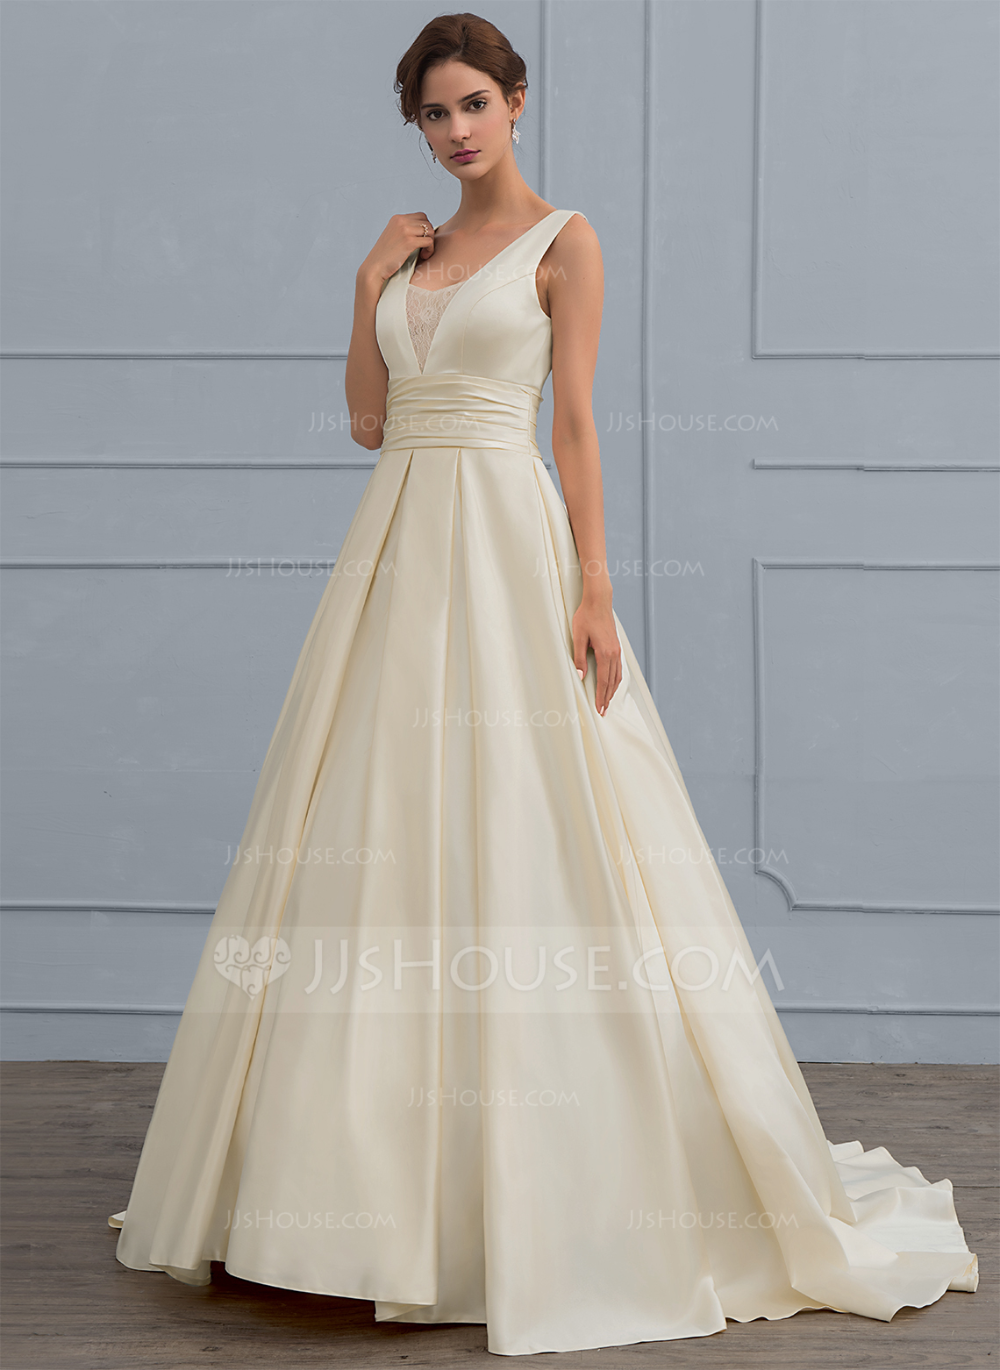 Jjshouse Ball Gown V Neck Sweep Train Satin Wedding Dress With Lace In 2020 Bridal Dresses Structured Wedding Dresses Elegant Wedding Dress